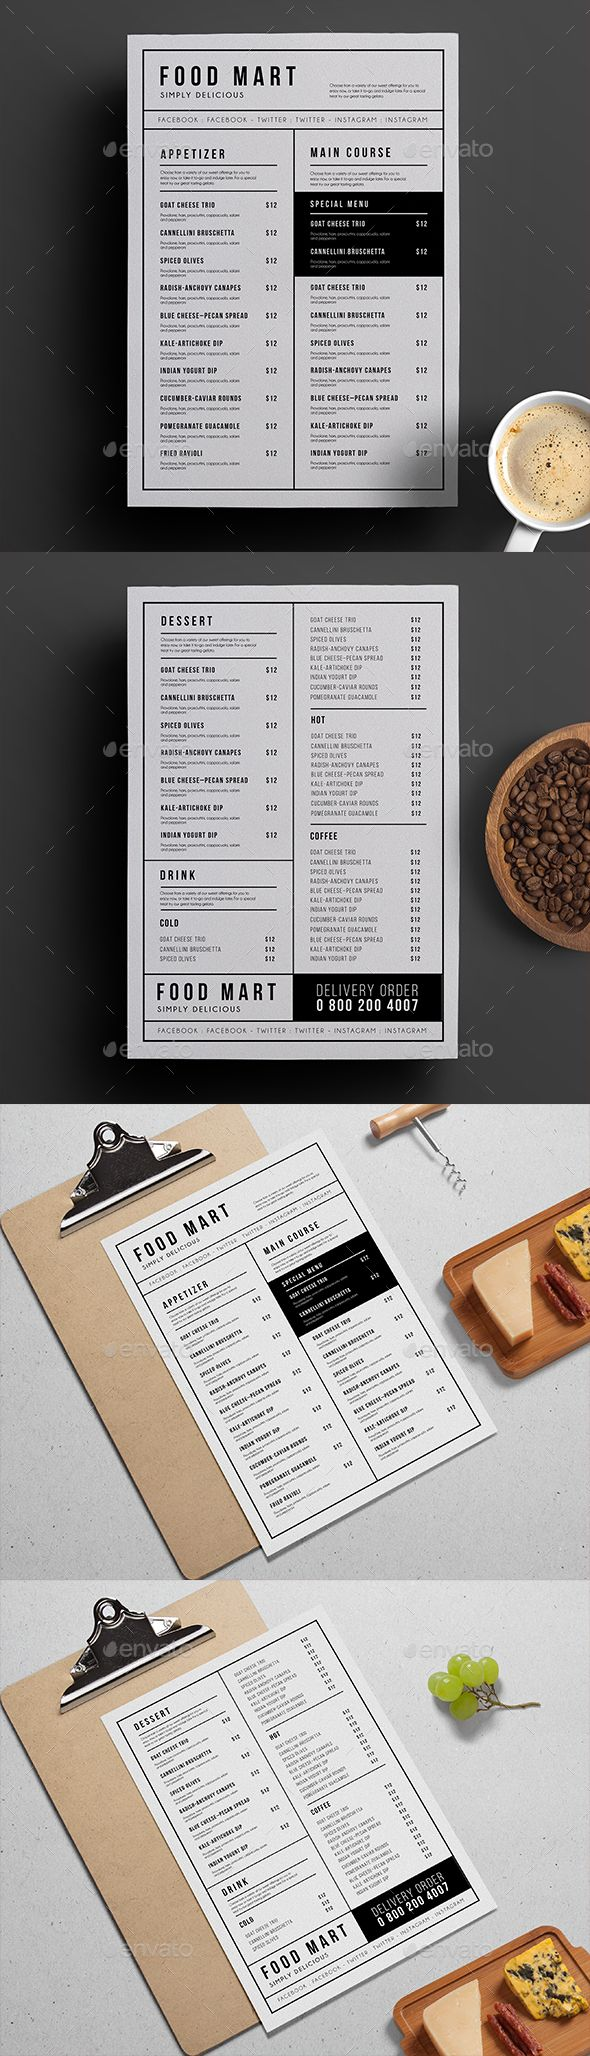 Connu Best 25+ Menu design ideas on Pinterest | Restaurant menu design  QS27